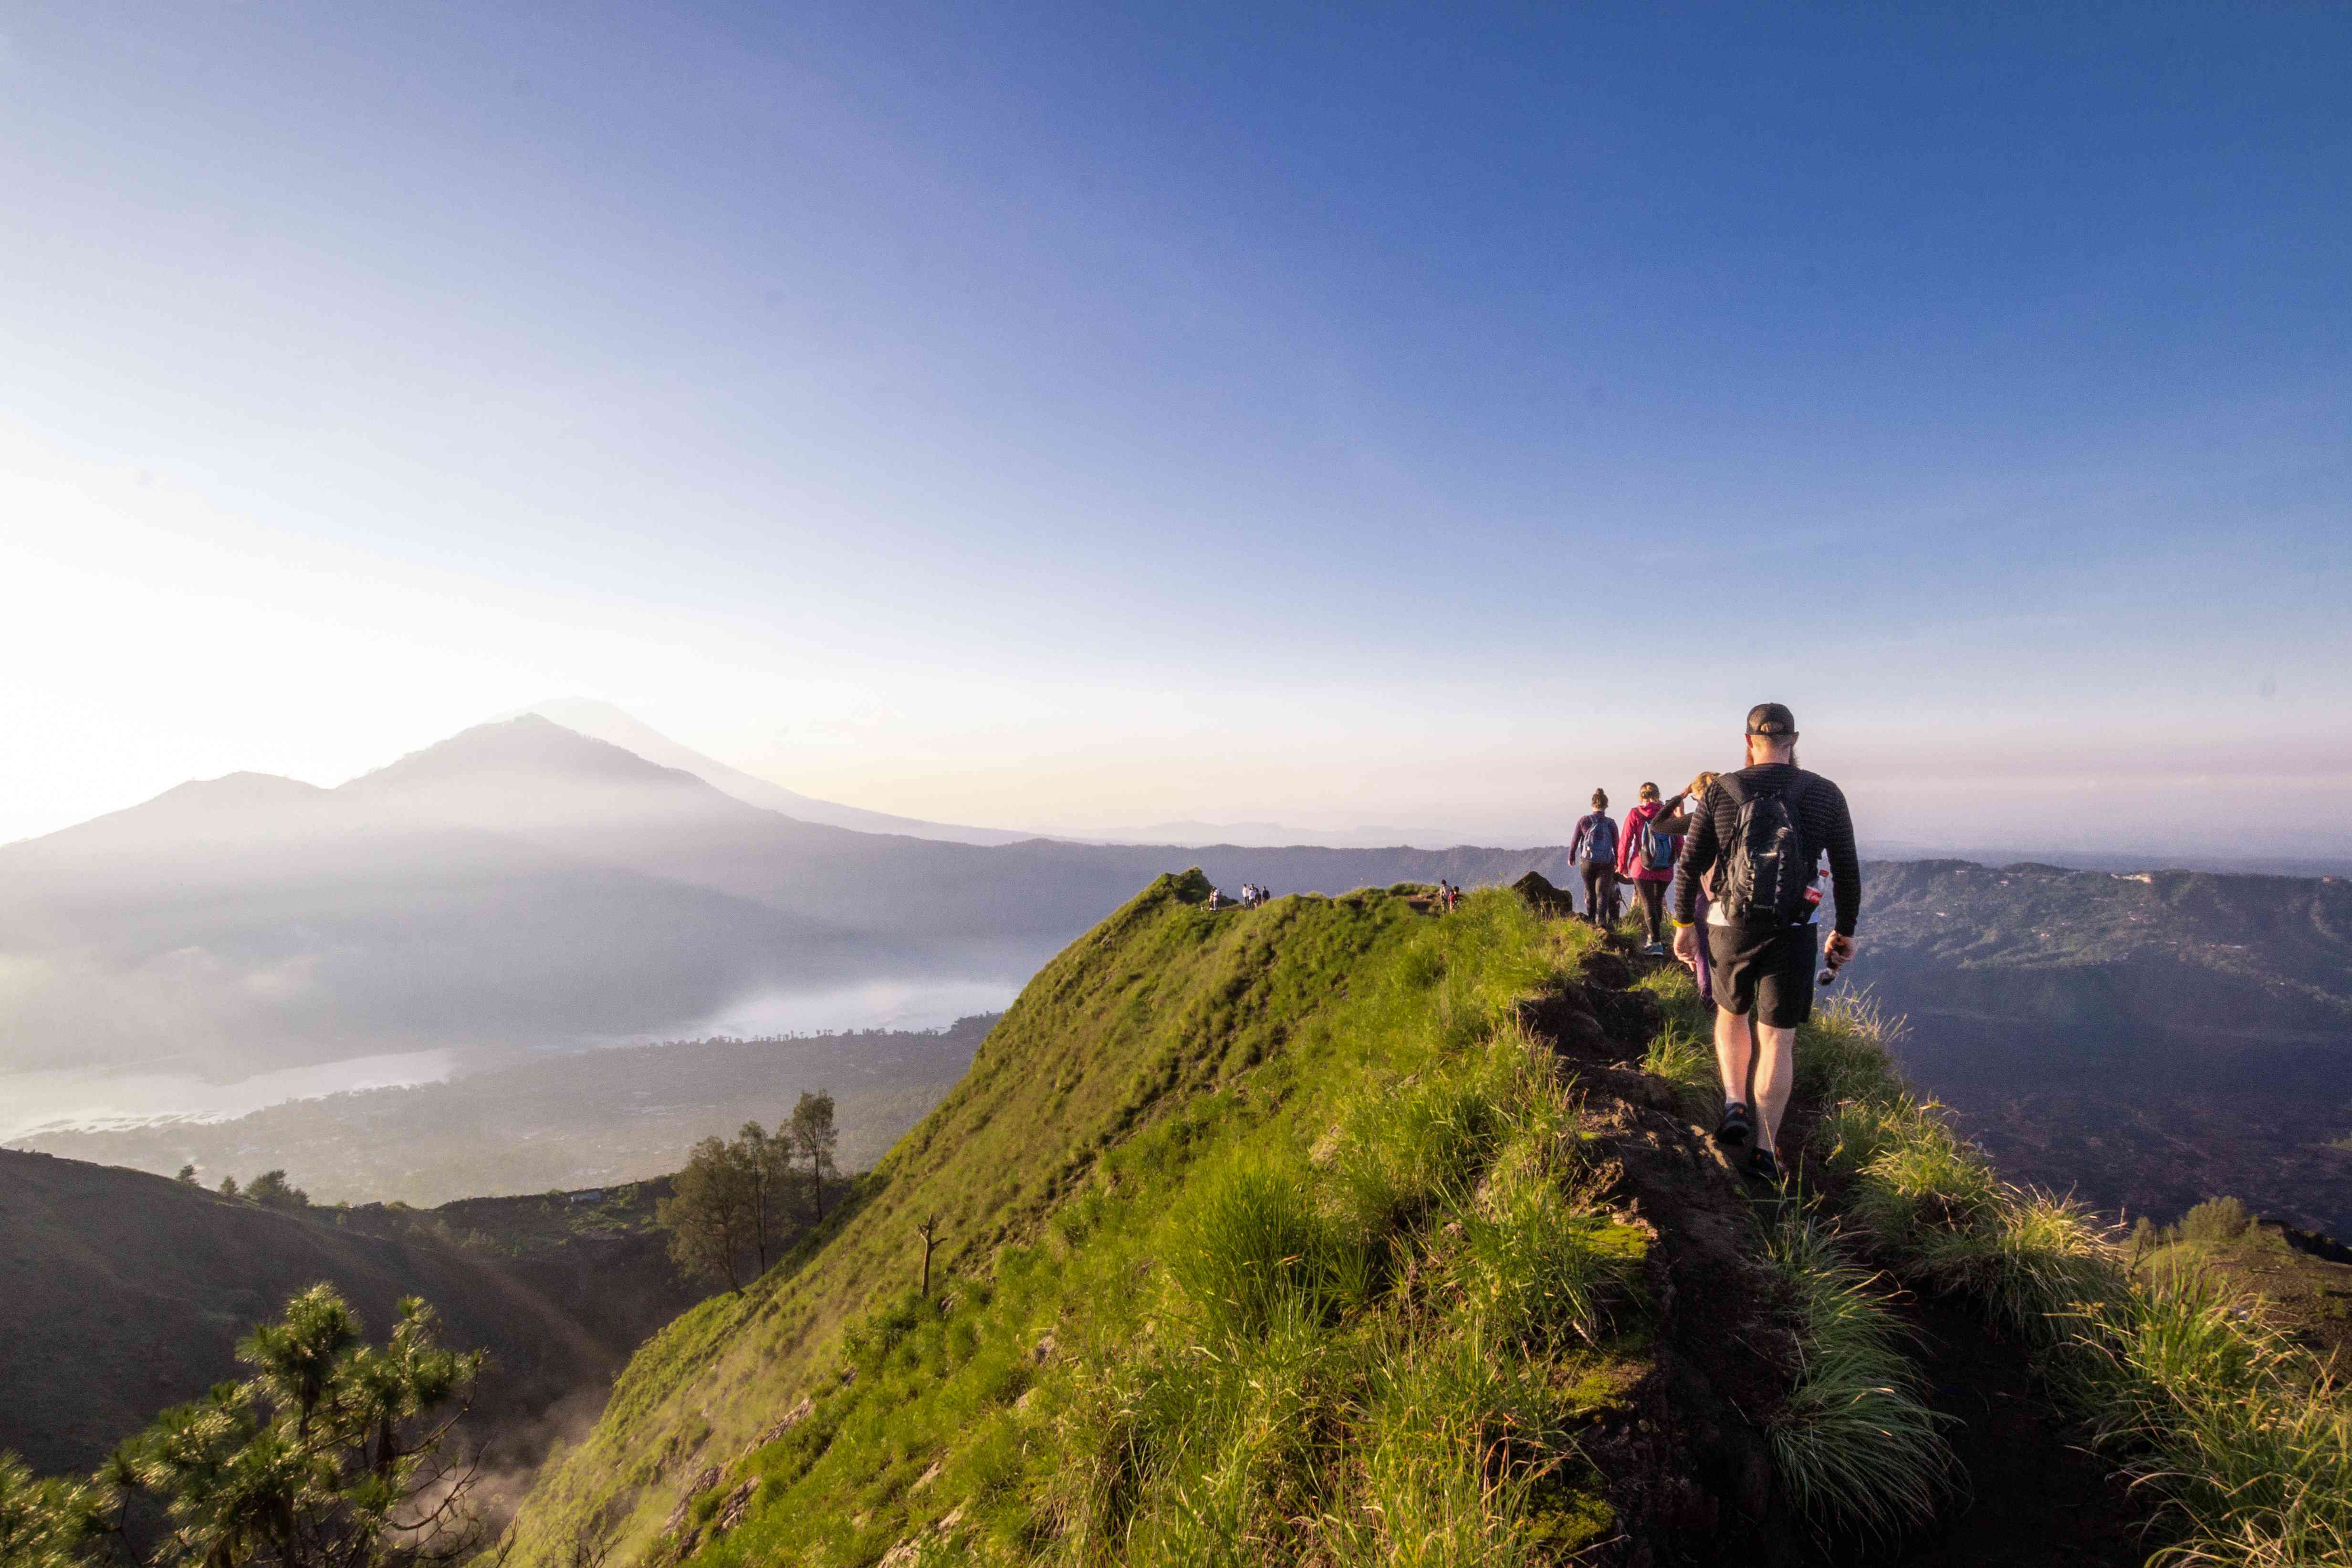 Hiking around the crater of Mount Batur with Mount Agung in the background